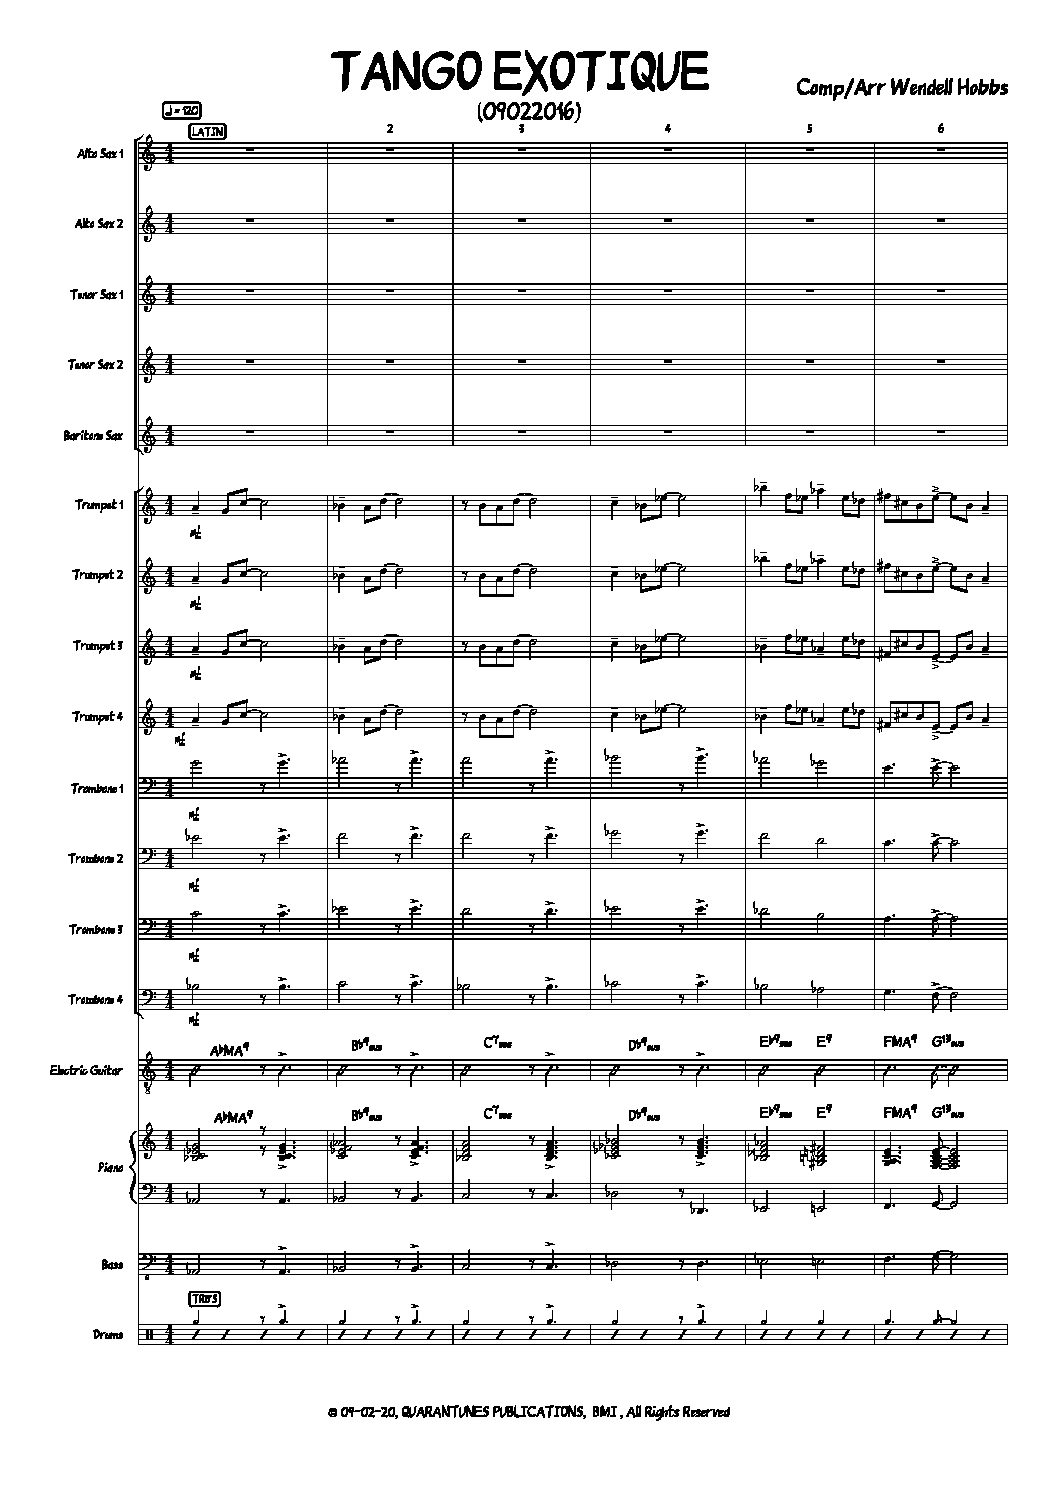 TANGO EXOTIQUE Score and Parts copy 2 1 pdf